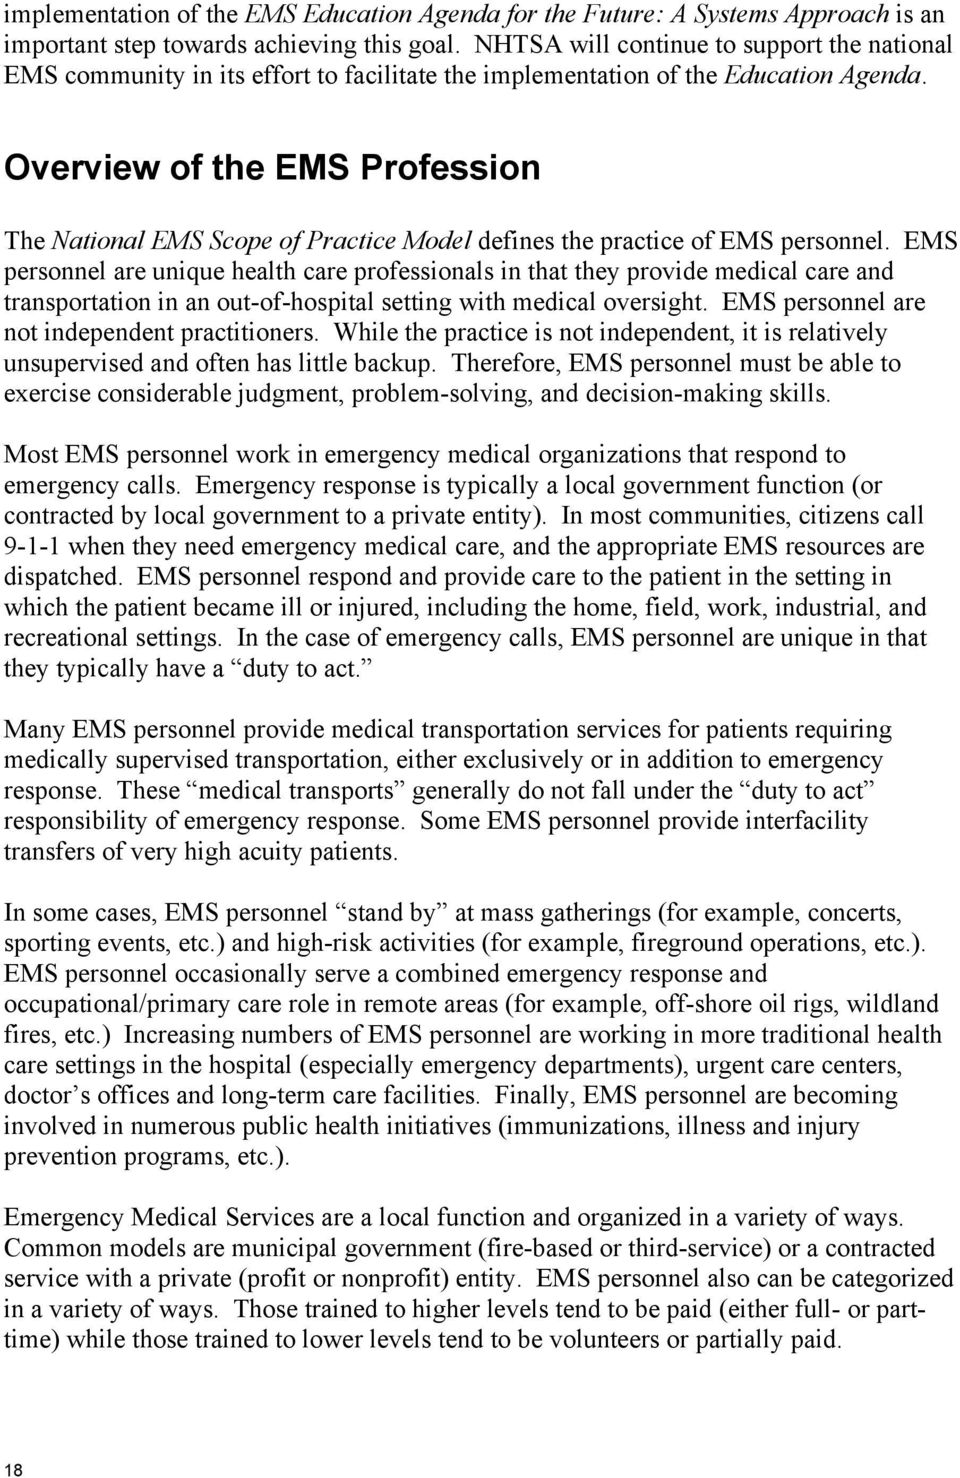 Overview of the EMS Profession The National EMS Scope of Practice Model defines the practice of EMS personnel.